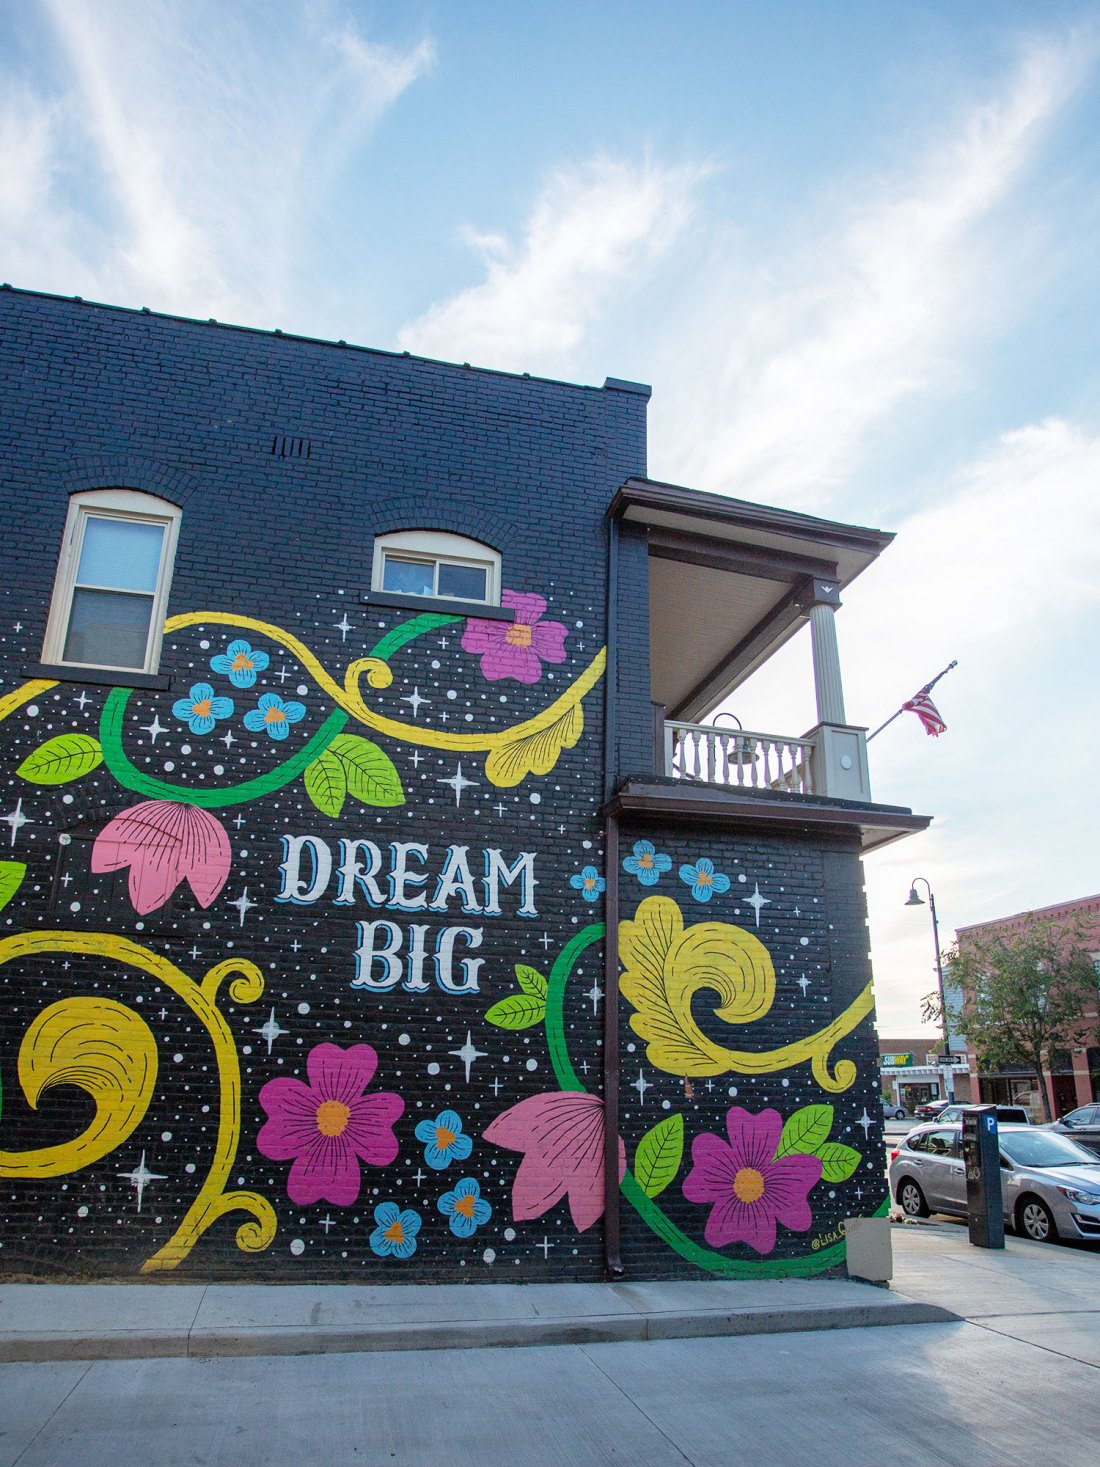 Mural by Lisa Quine in Gordon Square Detroit-Shoreway Neighborhood in Cleveland, Ohio.